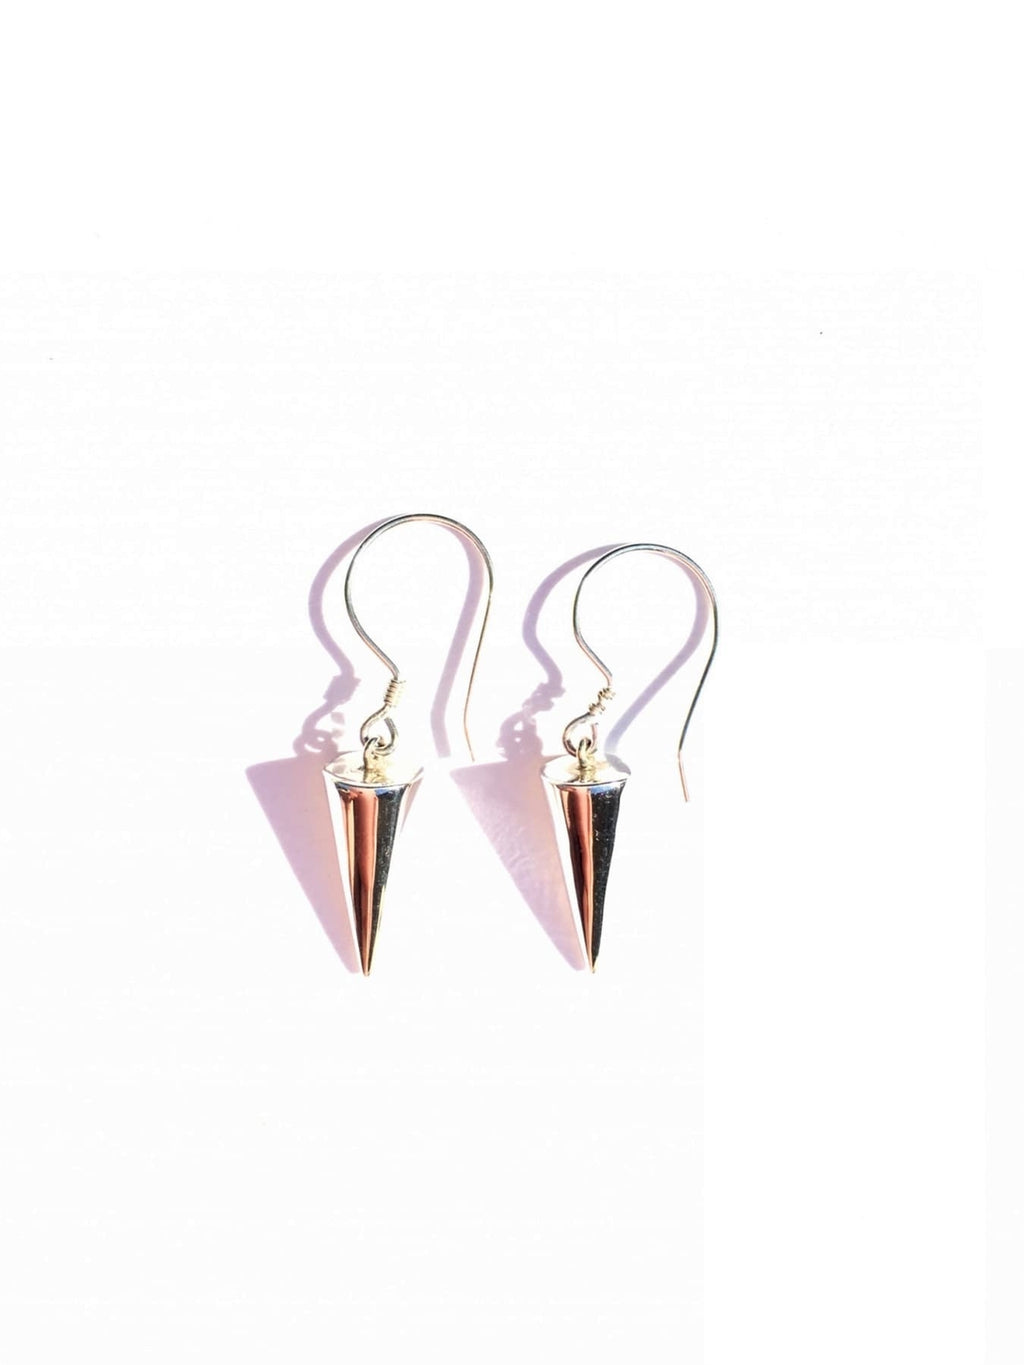 Sterling Silver Conical Shaped Earrings